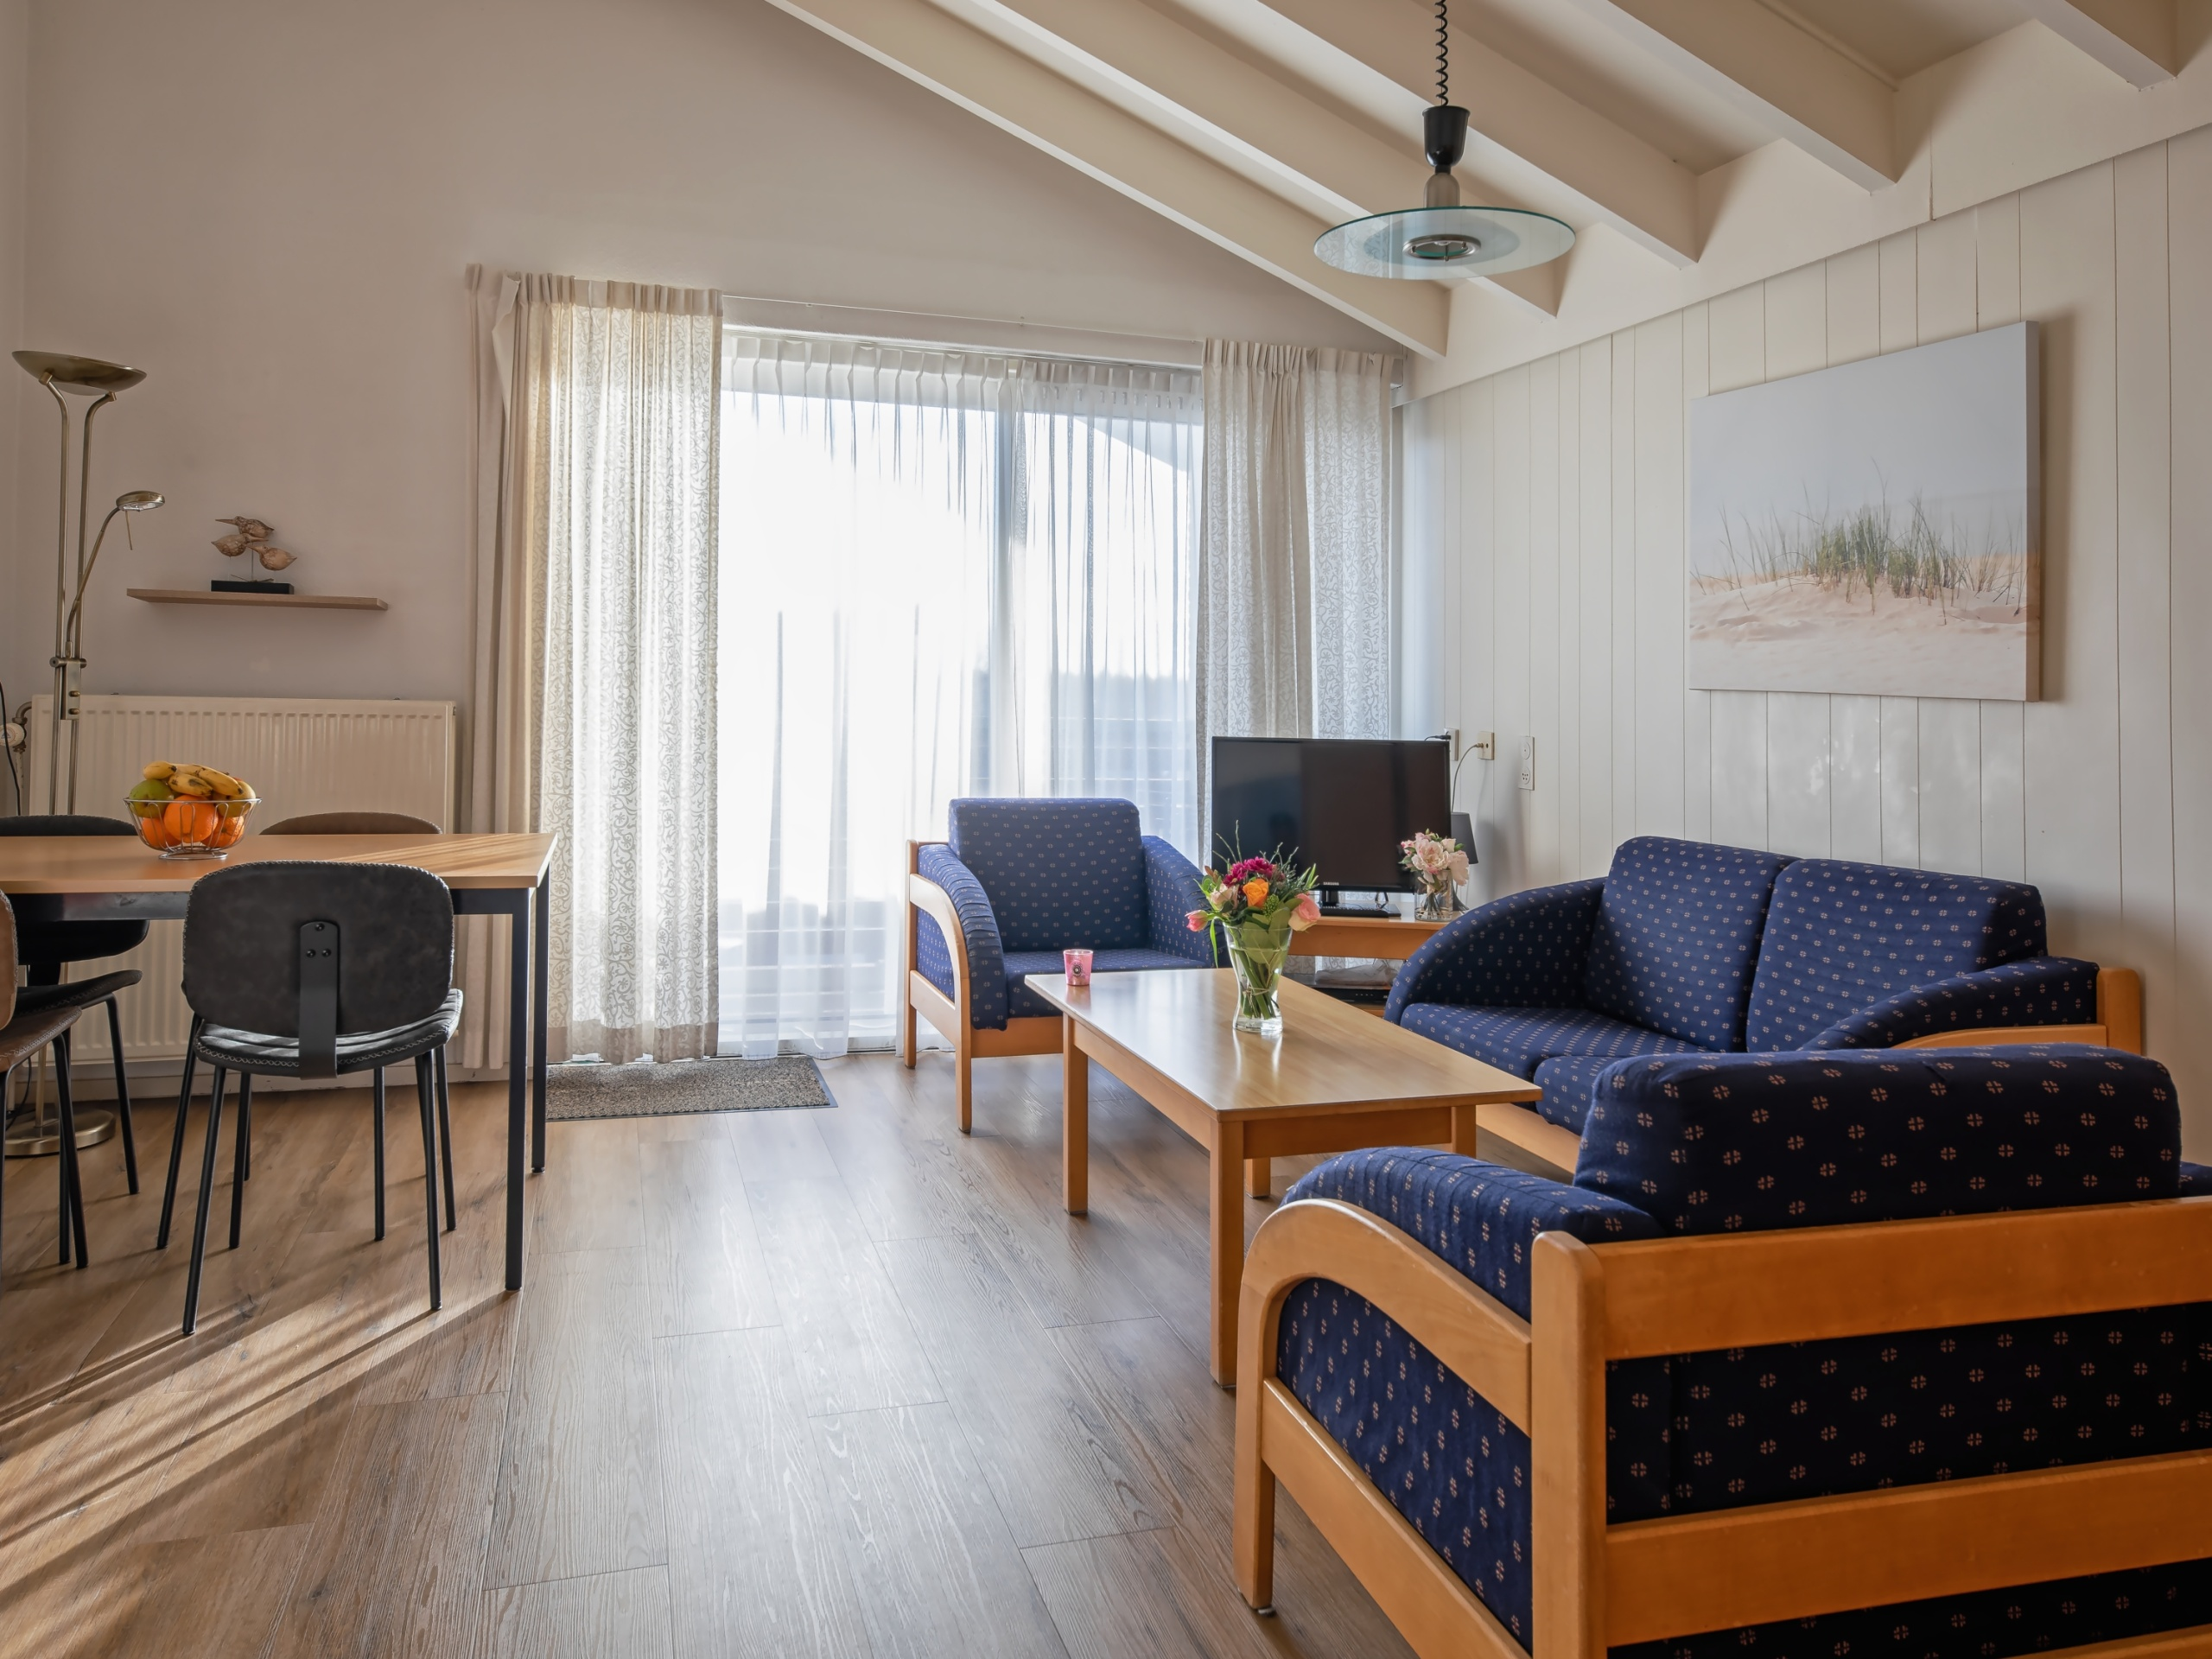 Bright and spacious apartment near the beach on the edge of the center of the seaside resort De Koog